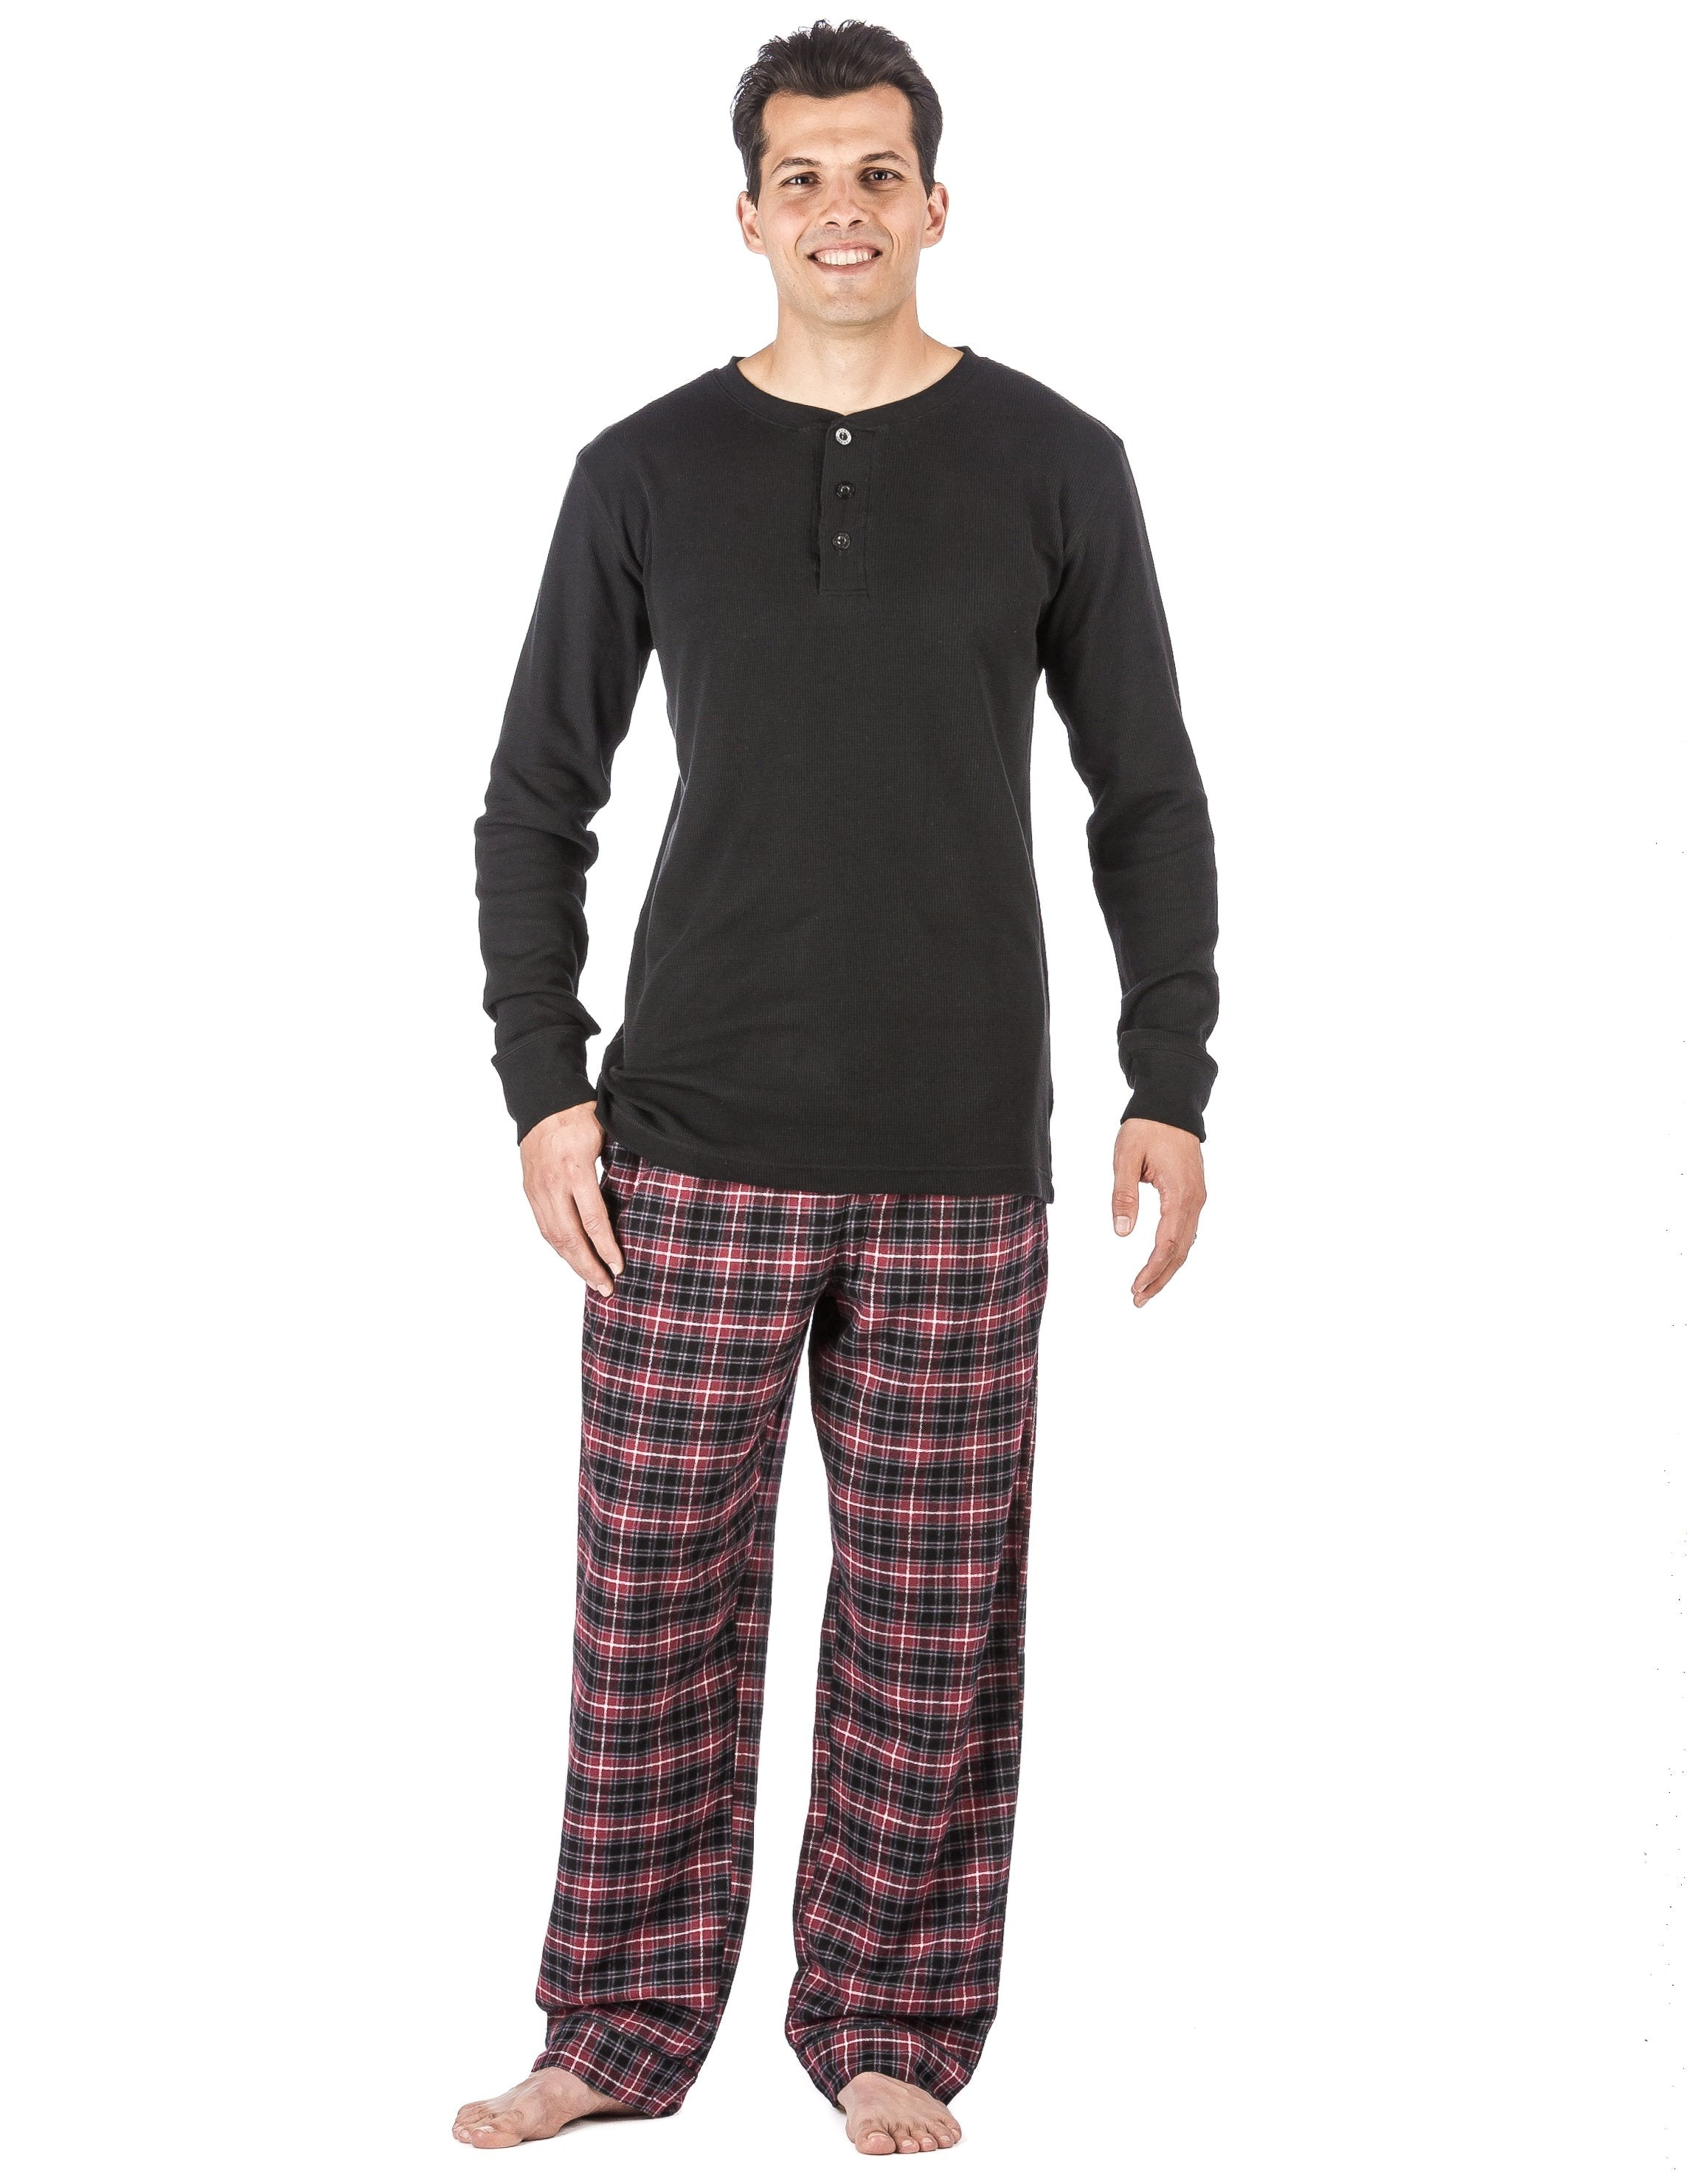 Mens Premium 100% Cotton Flannel Lounge Set - Plaid Burgundy/Grey